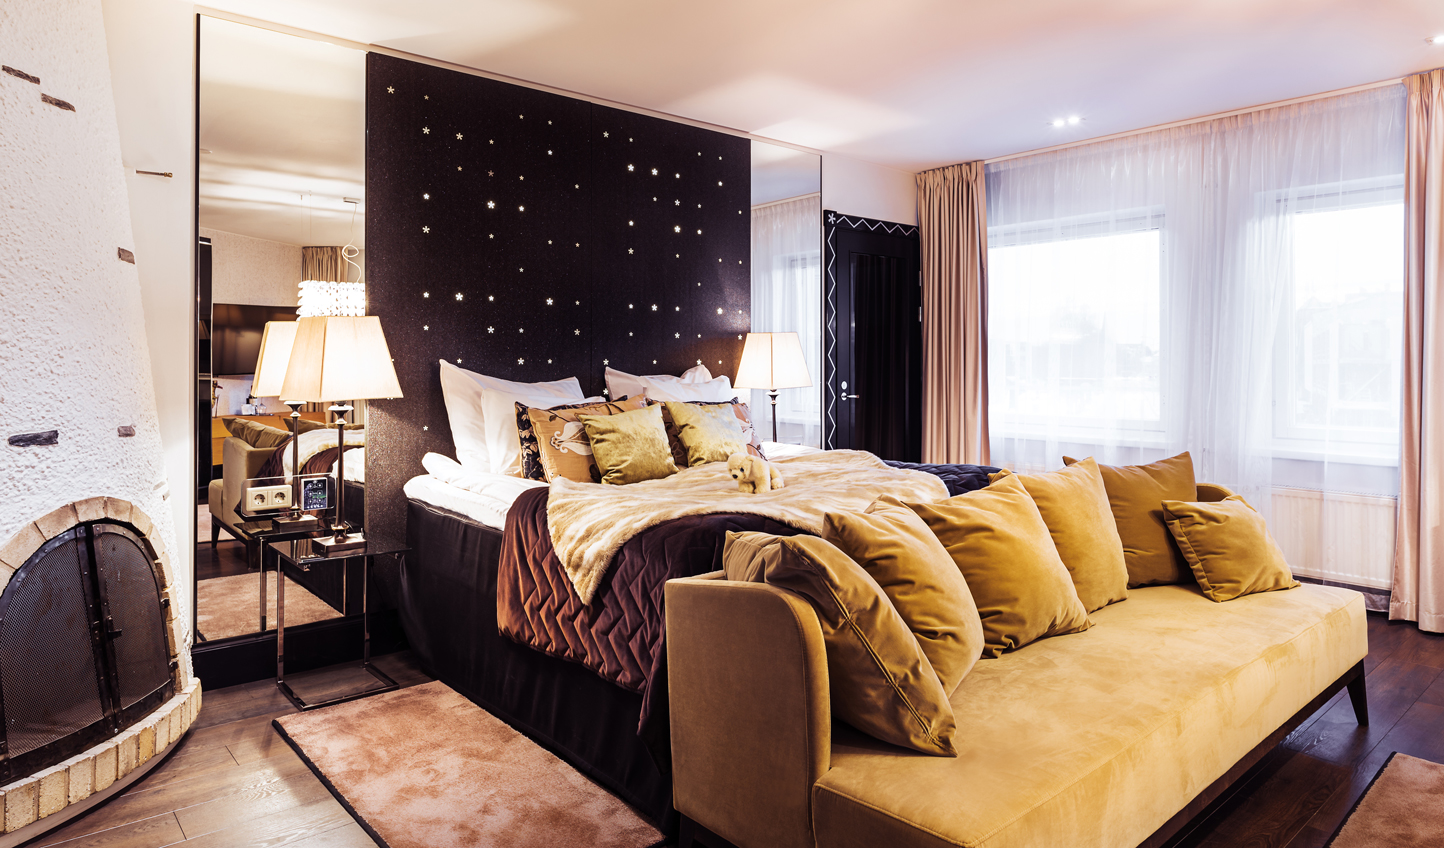 Modern yet cosy rooms provide a welcome respite from the snow outside